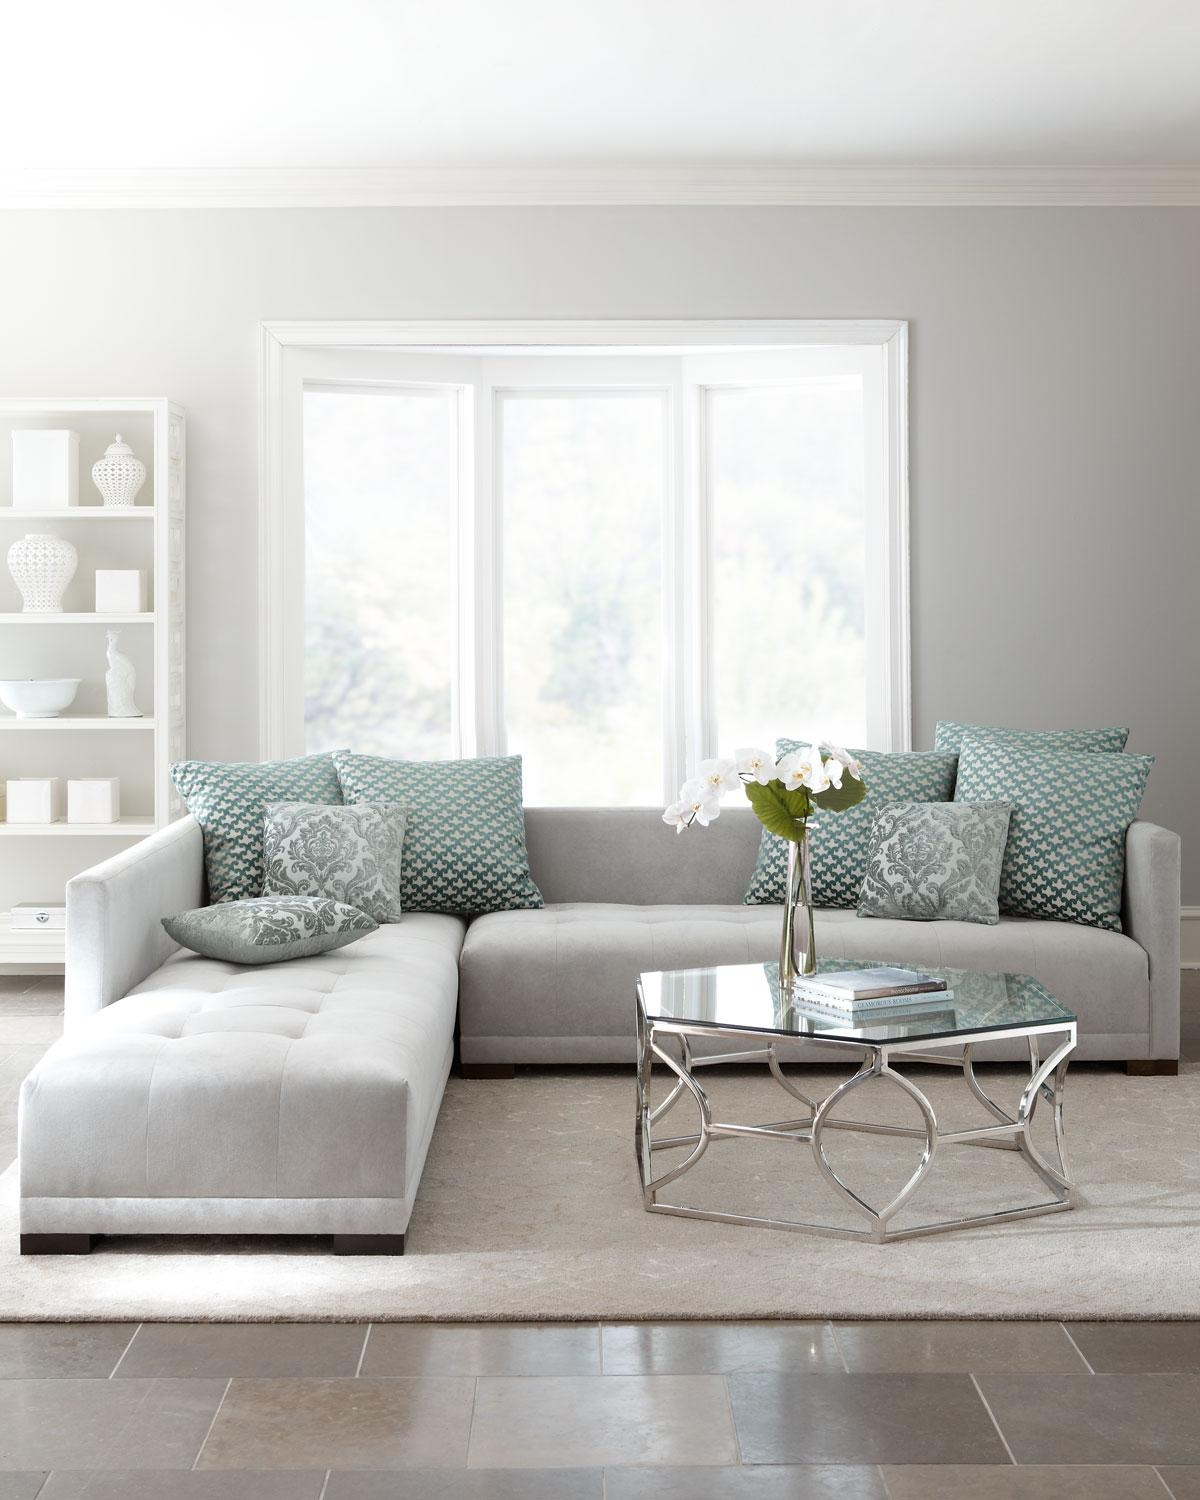 Sofa: Small Leather Sectional | West Elm Sectional | Tufted In West Elm Sectional Sofa (View 7 of 20)